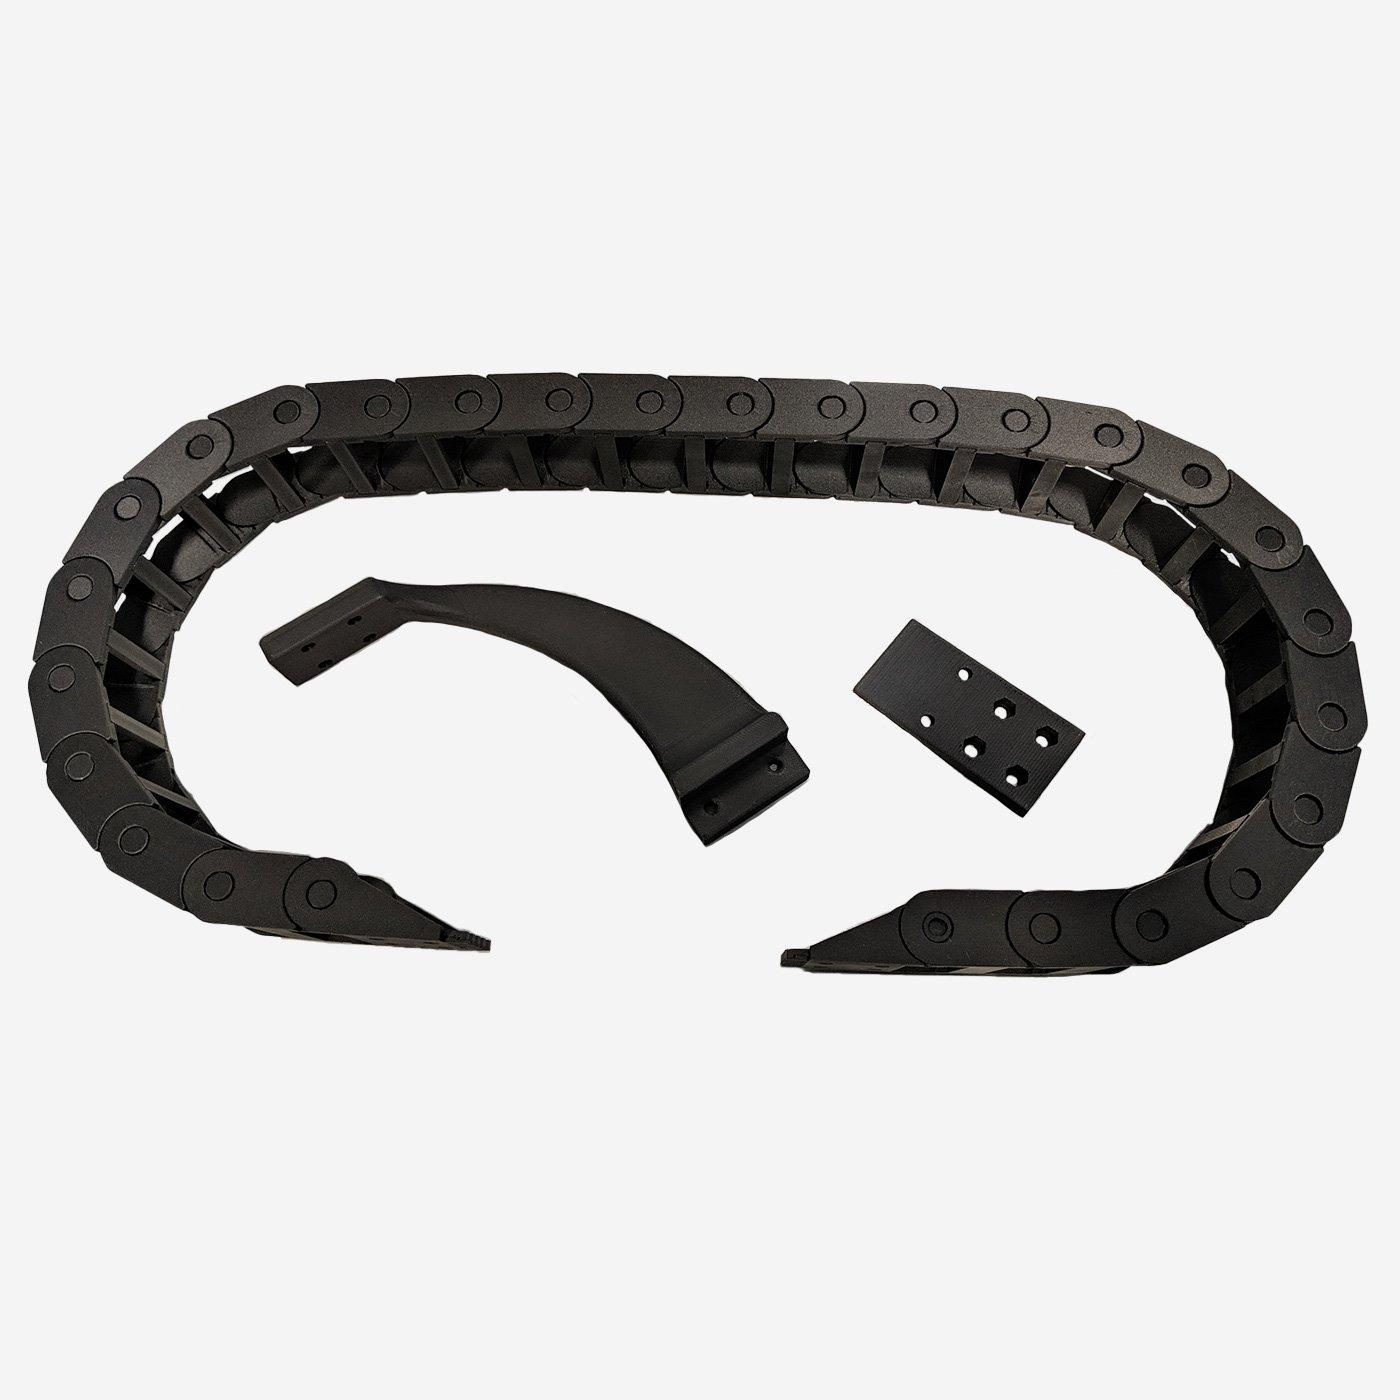 Energy Chain Bracket